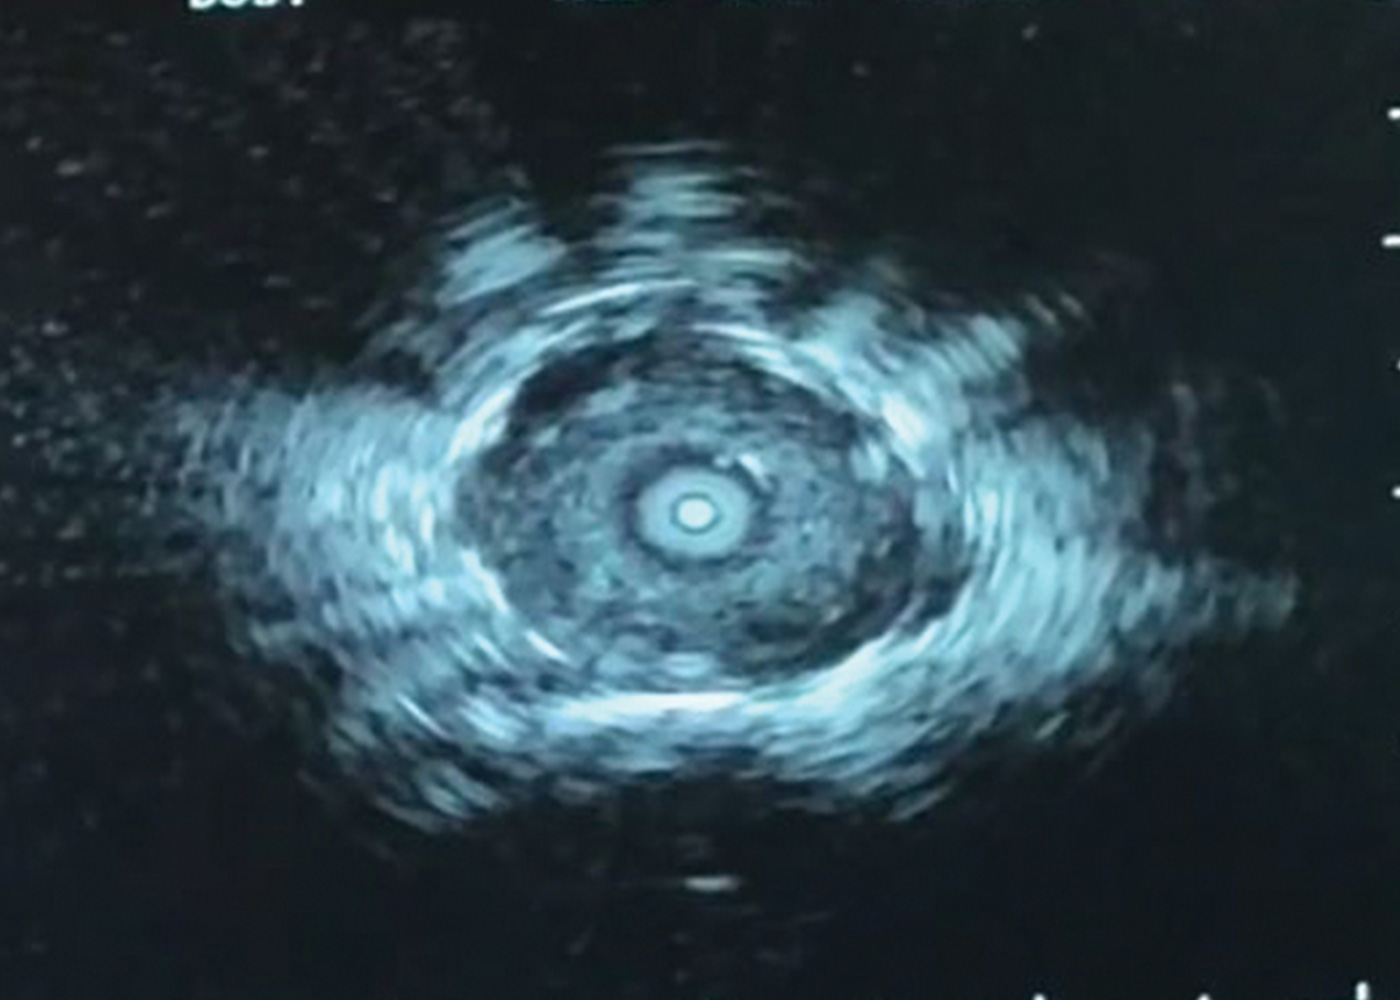 Fig 4. Concentric REBUS pattern after creating small airway passage to nodule